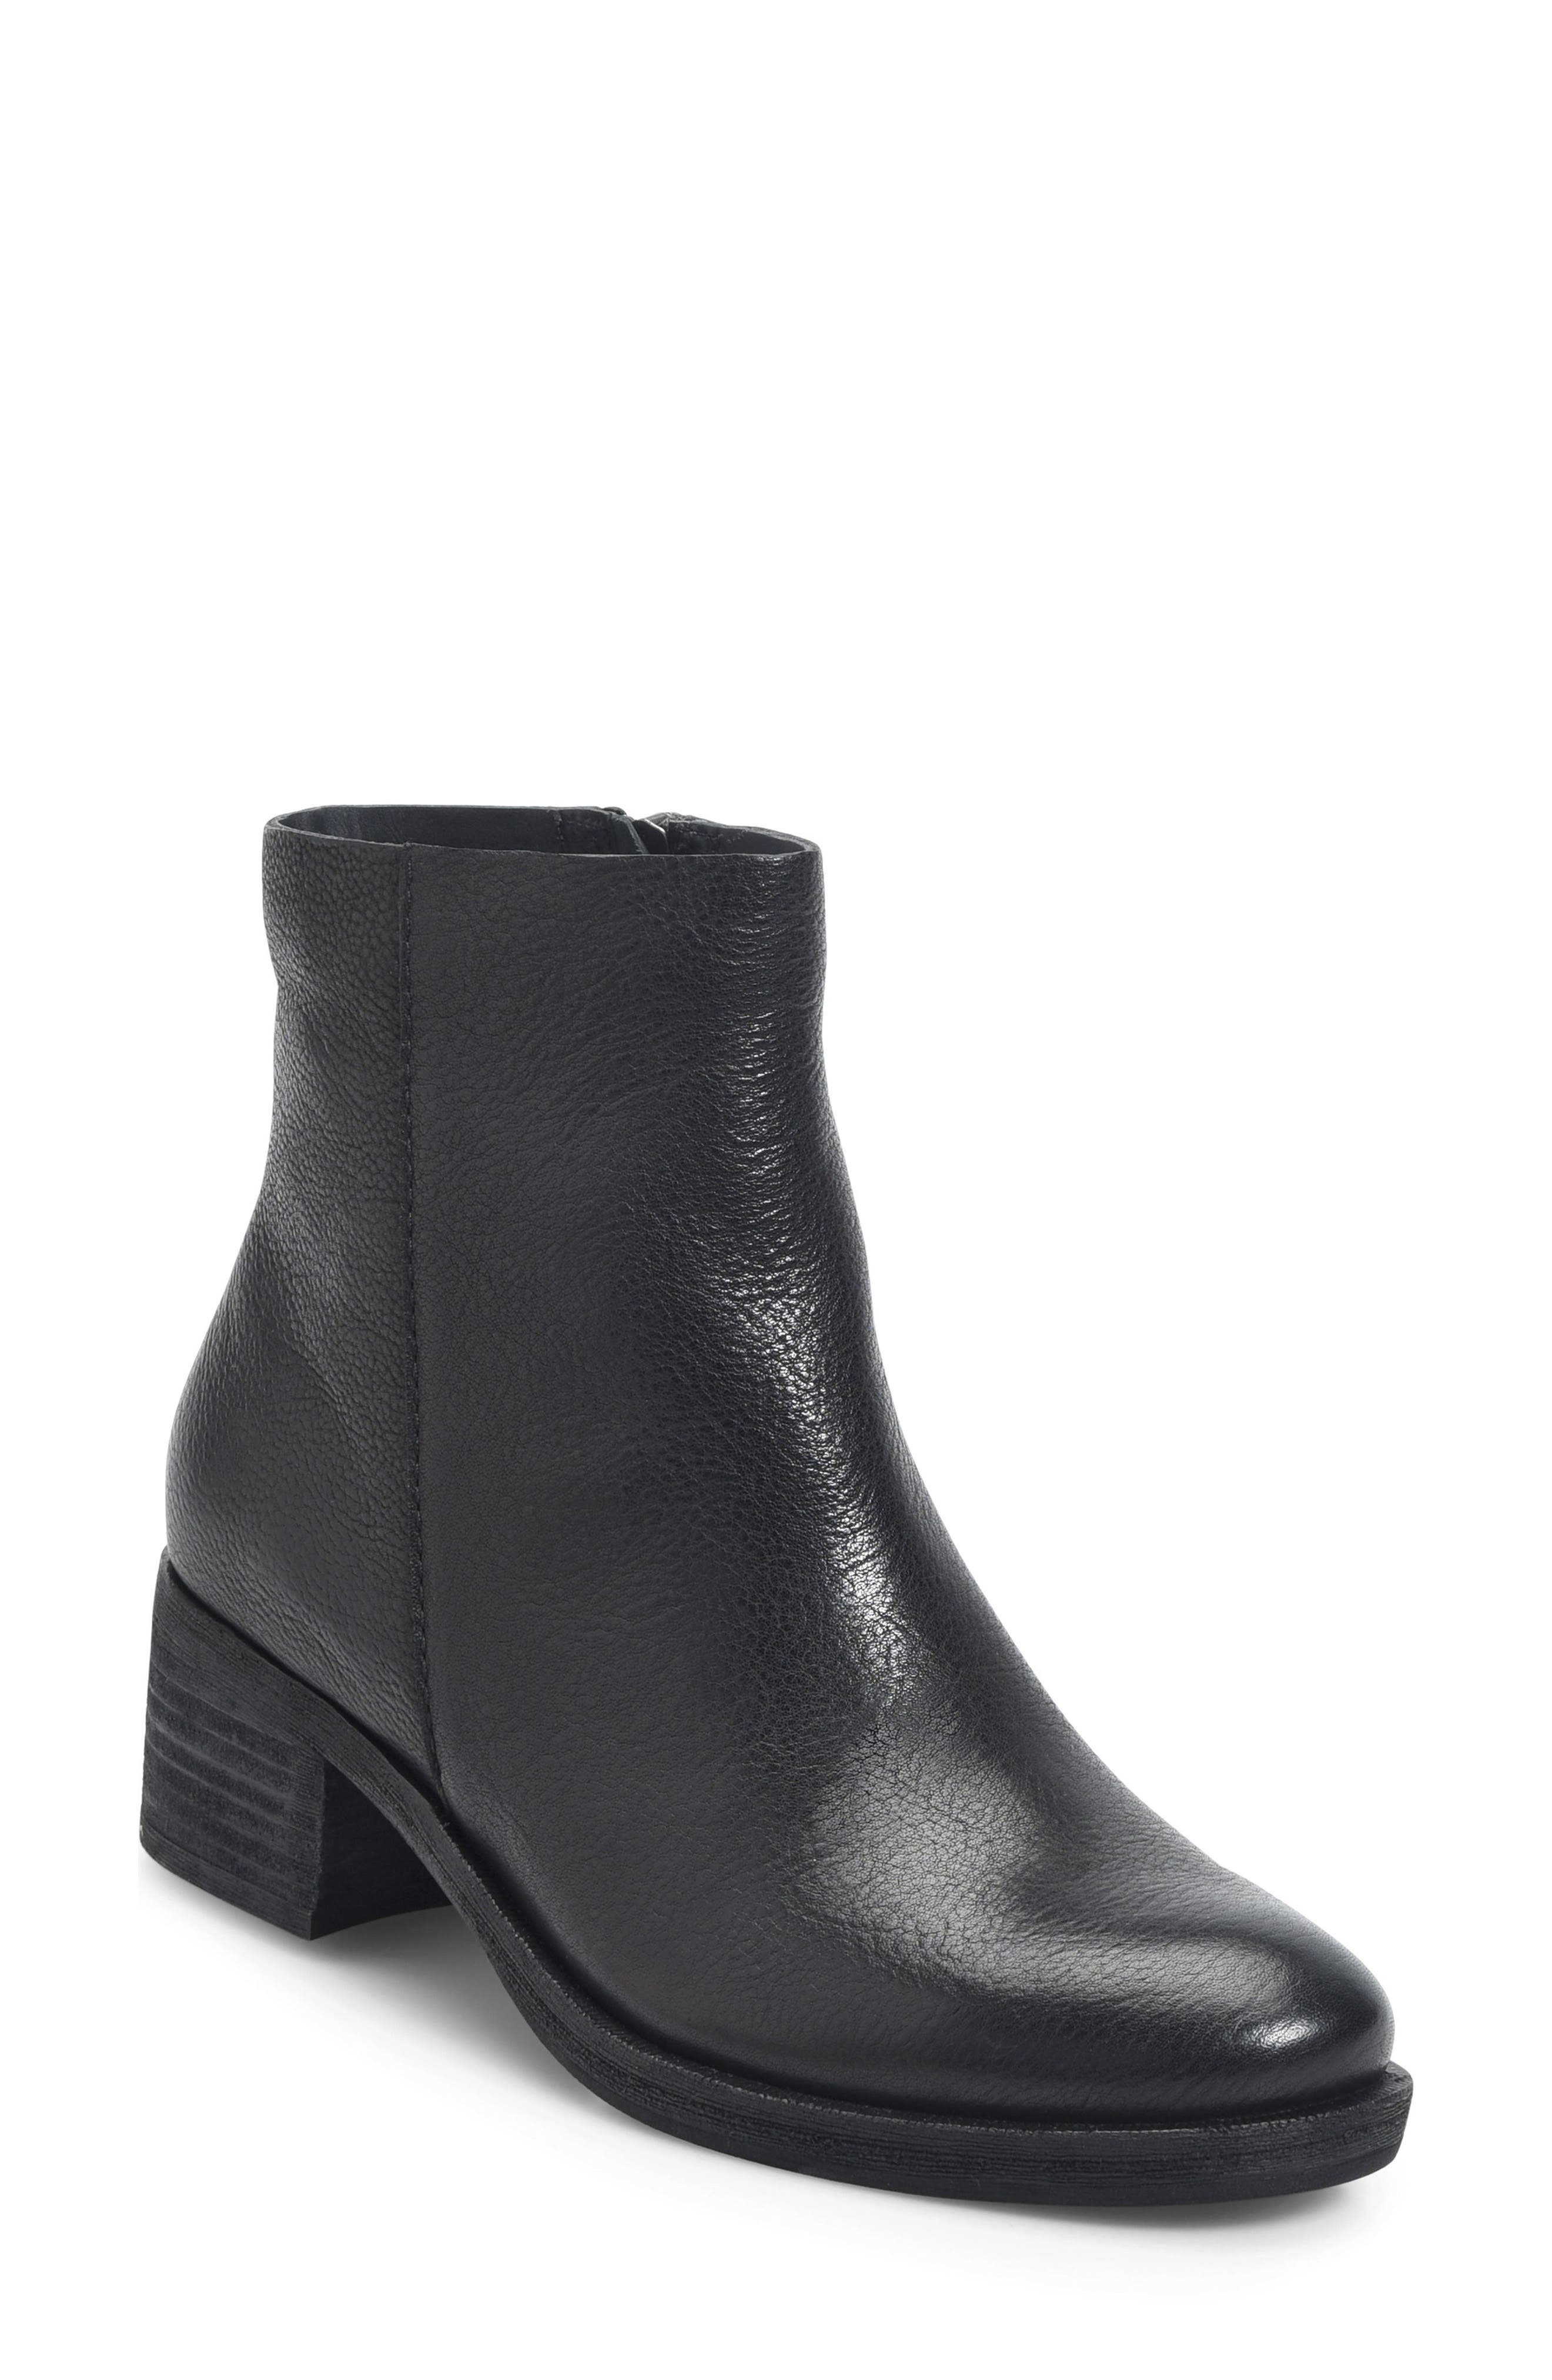 Mayten Bootie,                             Main thumbnail 1, color,                             Black Leather